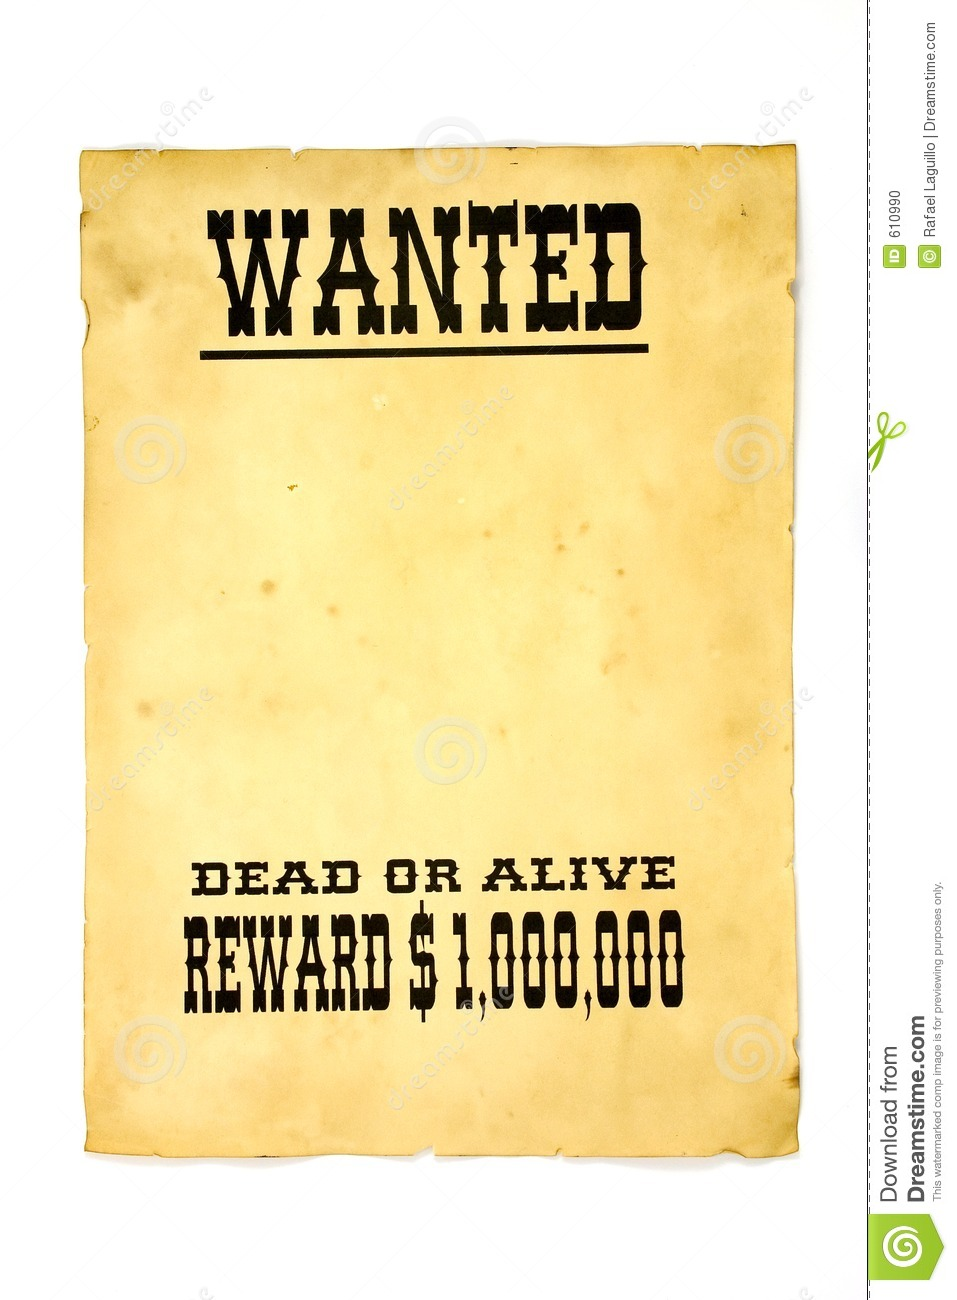 What is Wanted Poster